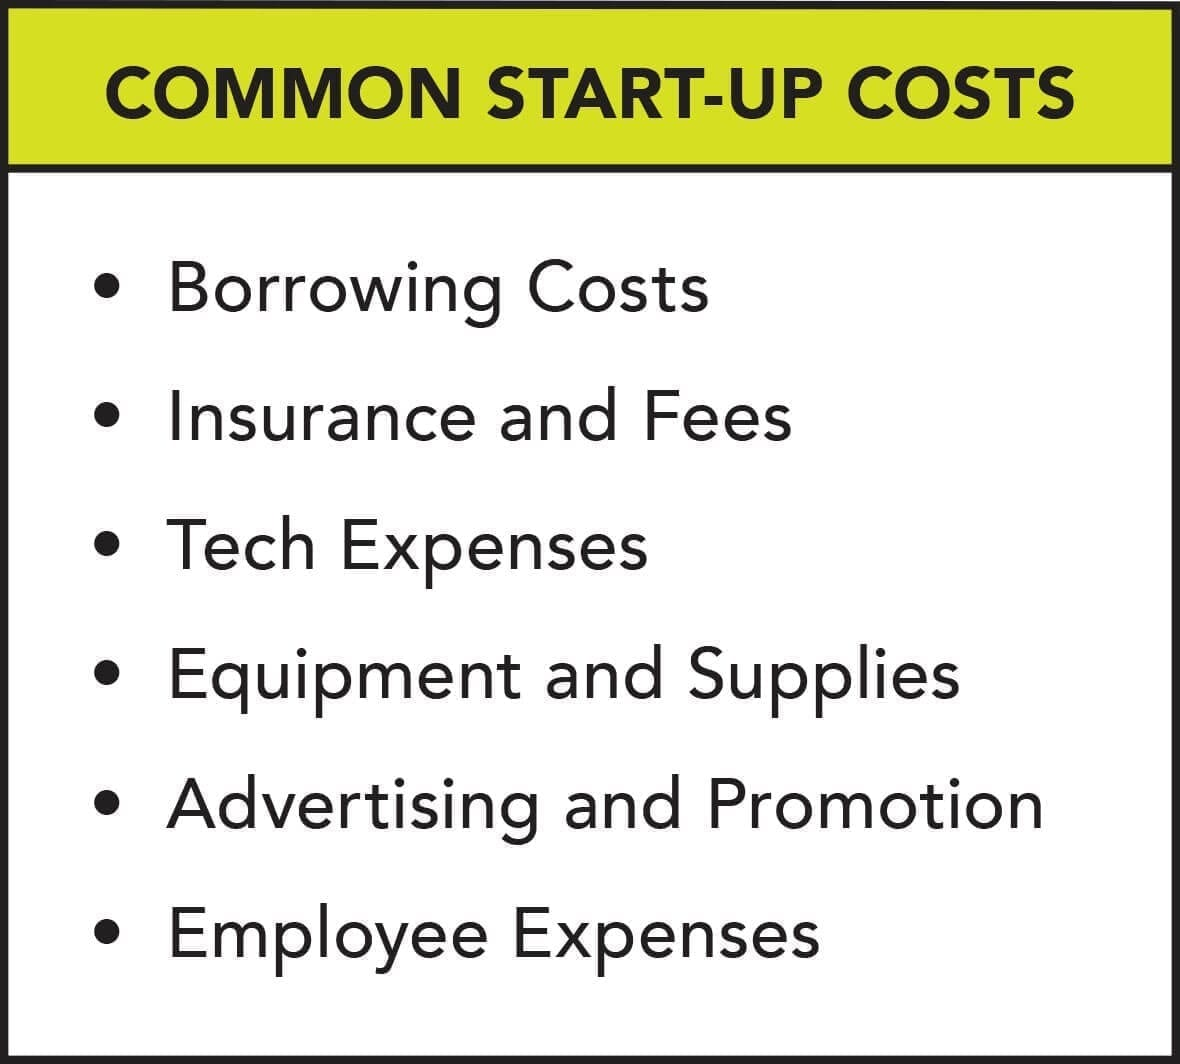 Common start-up costs include borrowing costs, insurance and fees, tech expenses, equipment and supplies, advertising and promotion, and employee expenses.